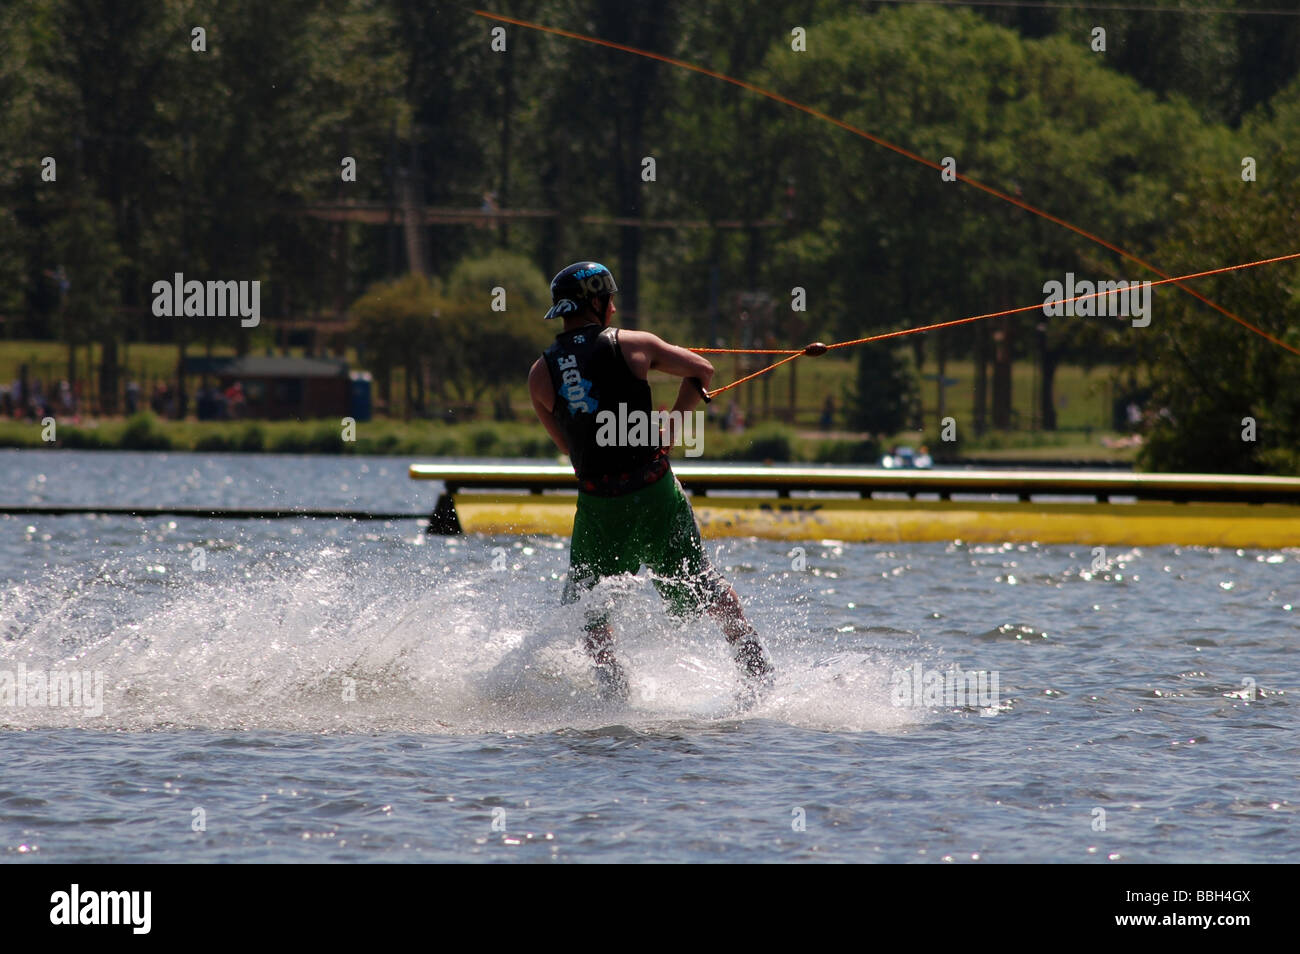 Water sports; wake boarding at Willen Lake in Milton Keynes in the summer. - Stock Image